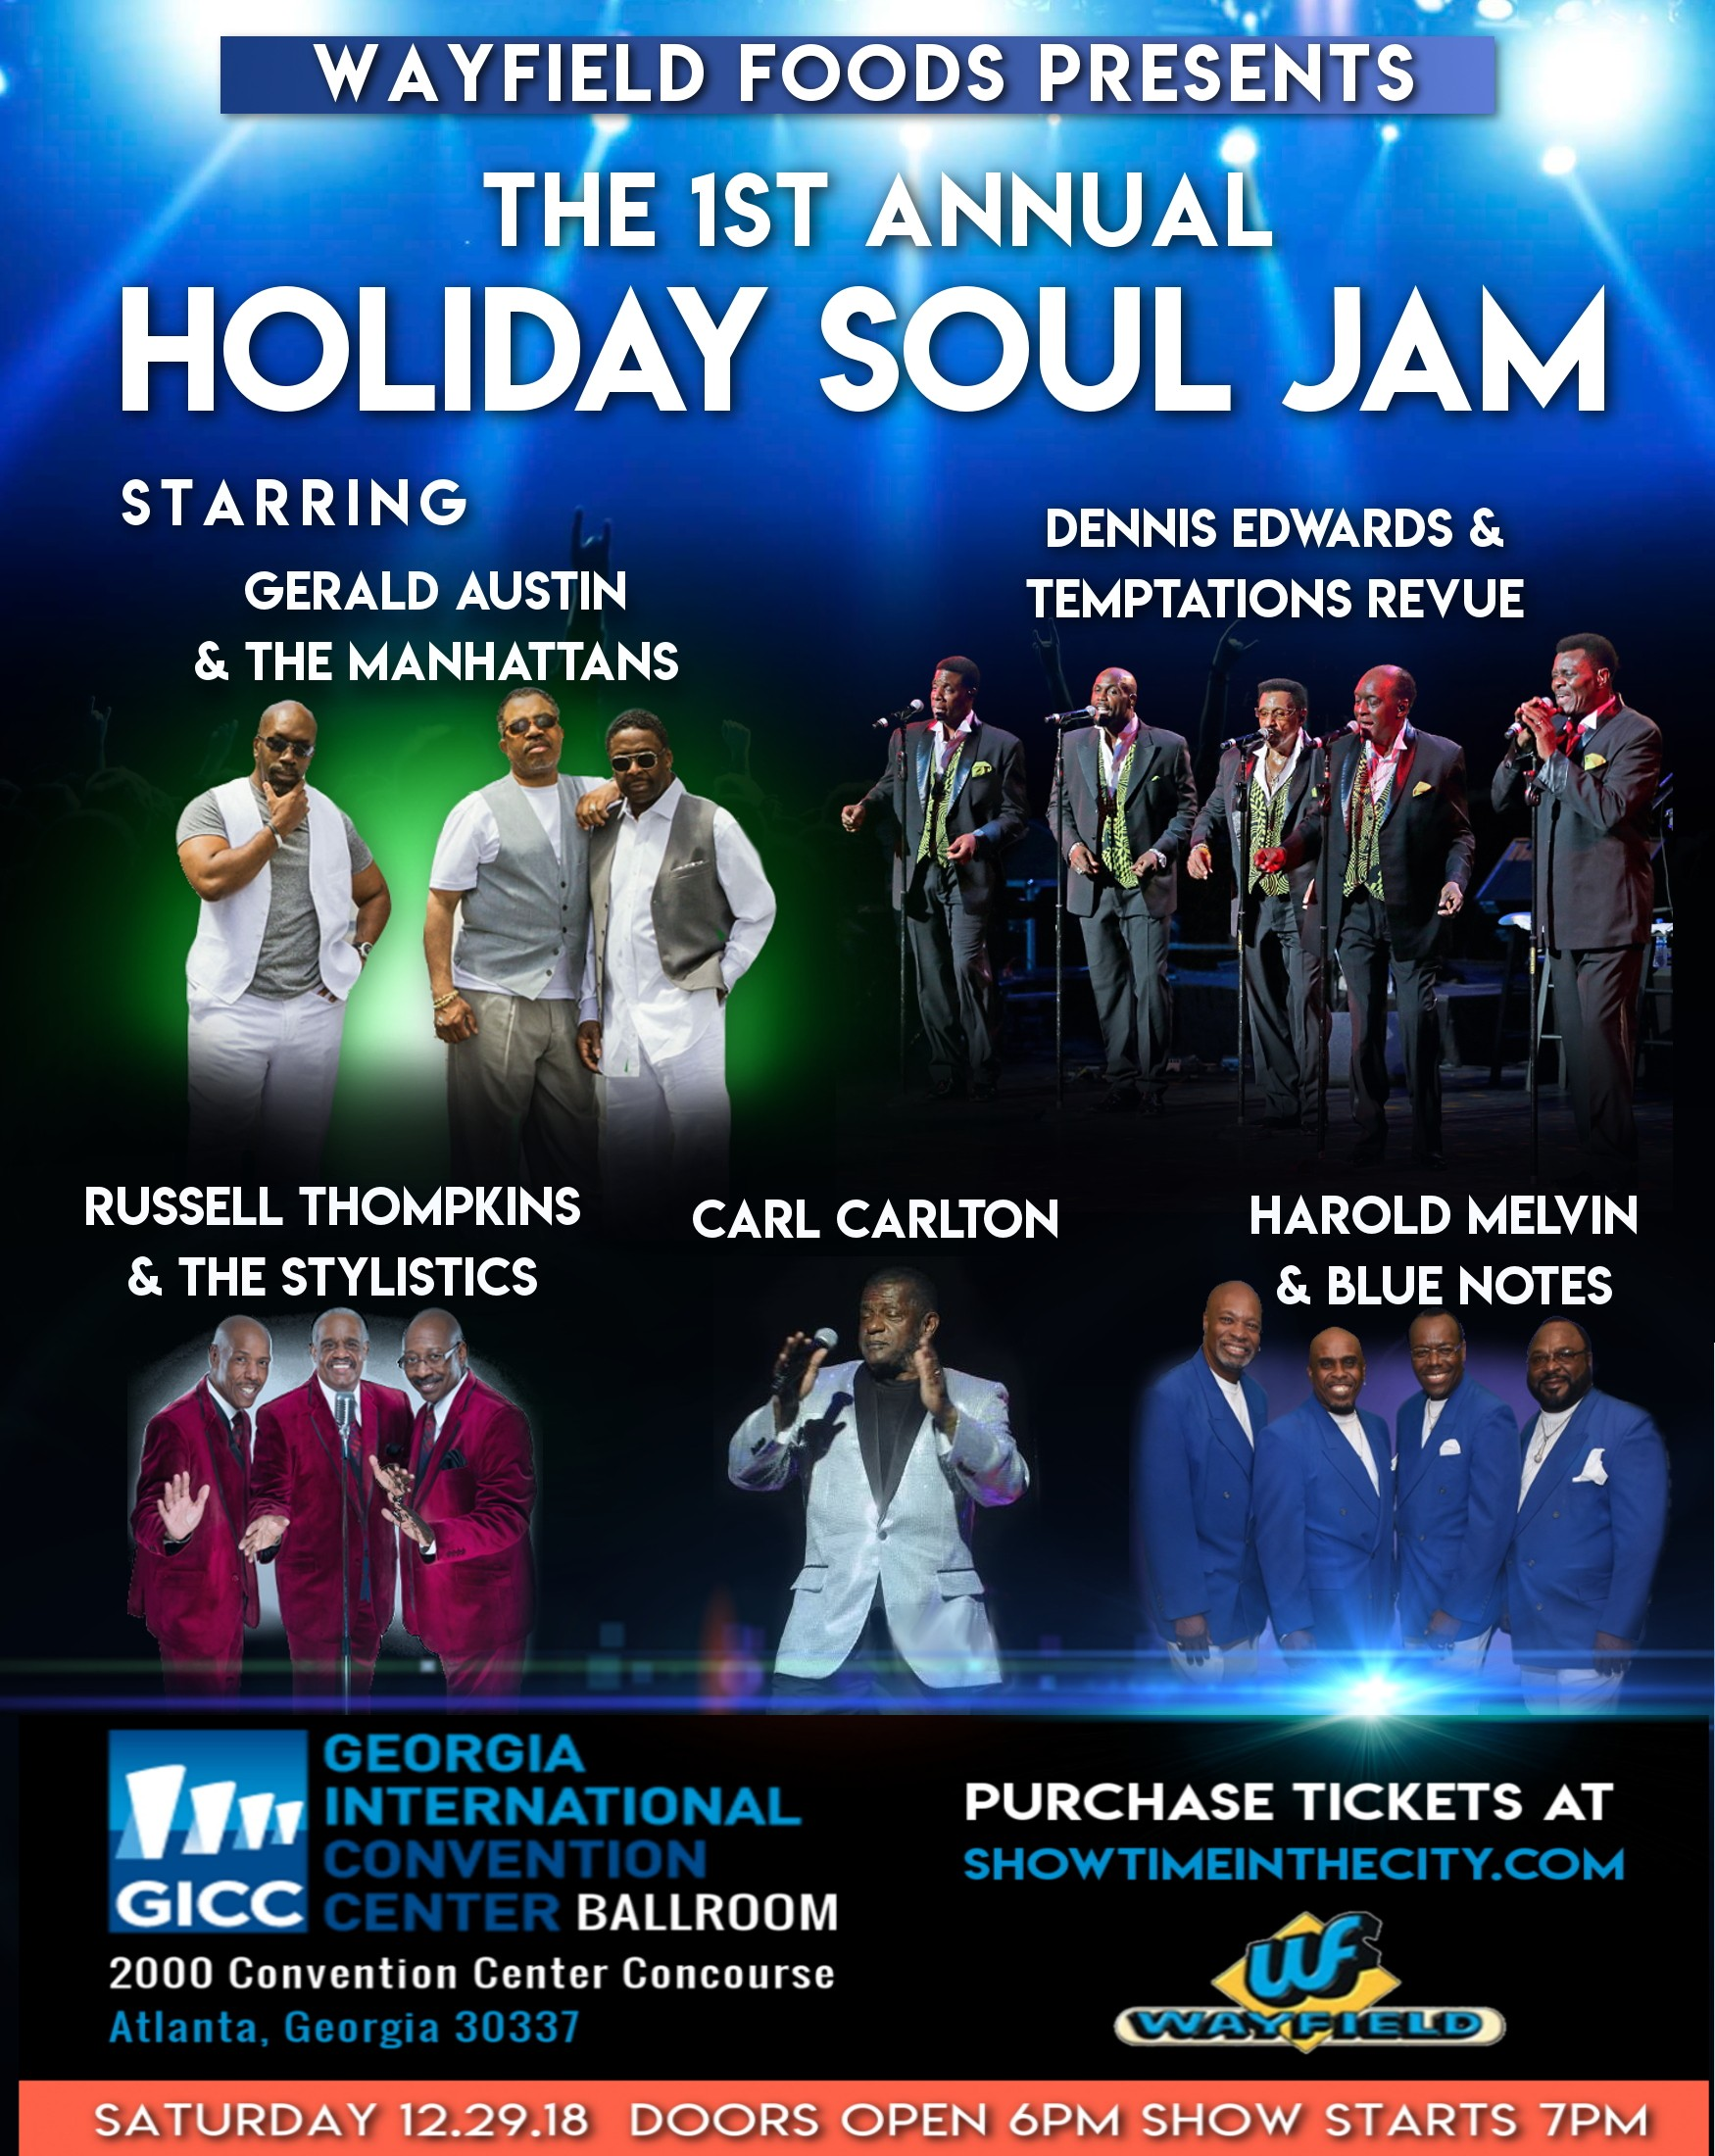 The First Annual Holiday Soul Jam